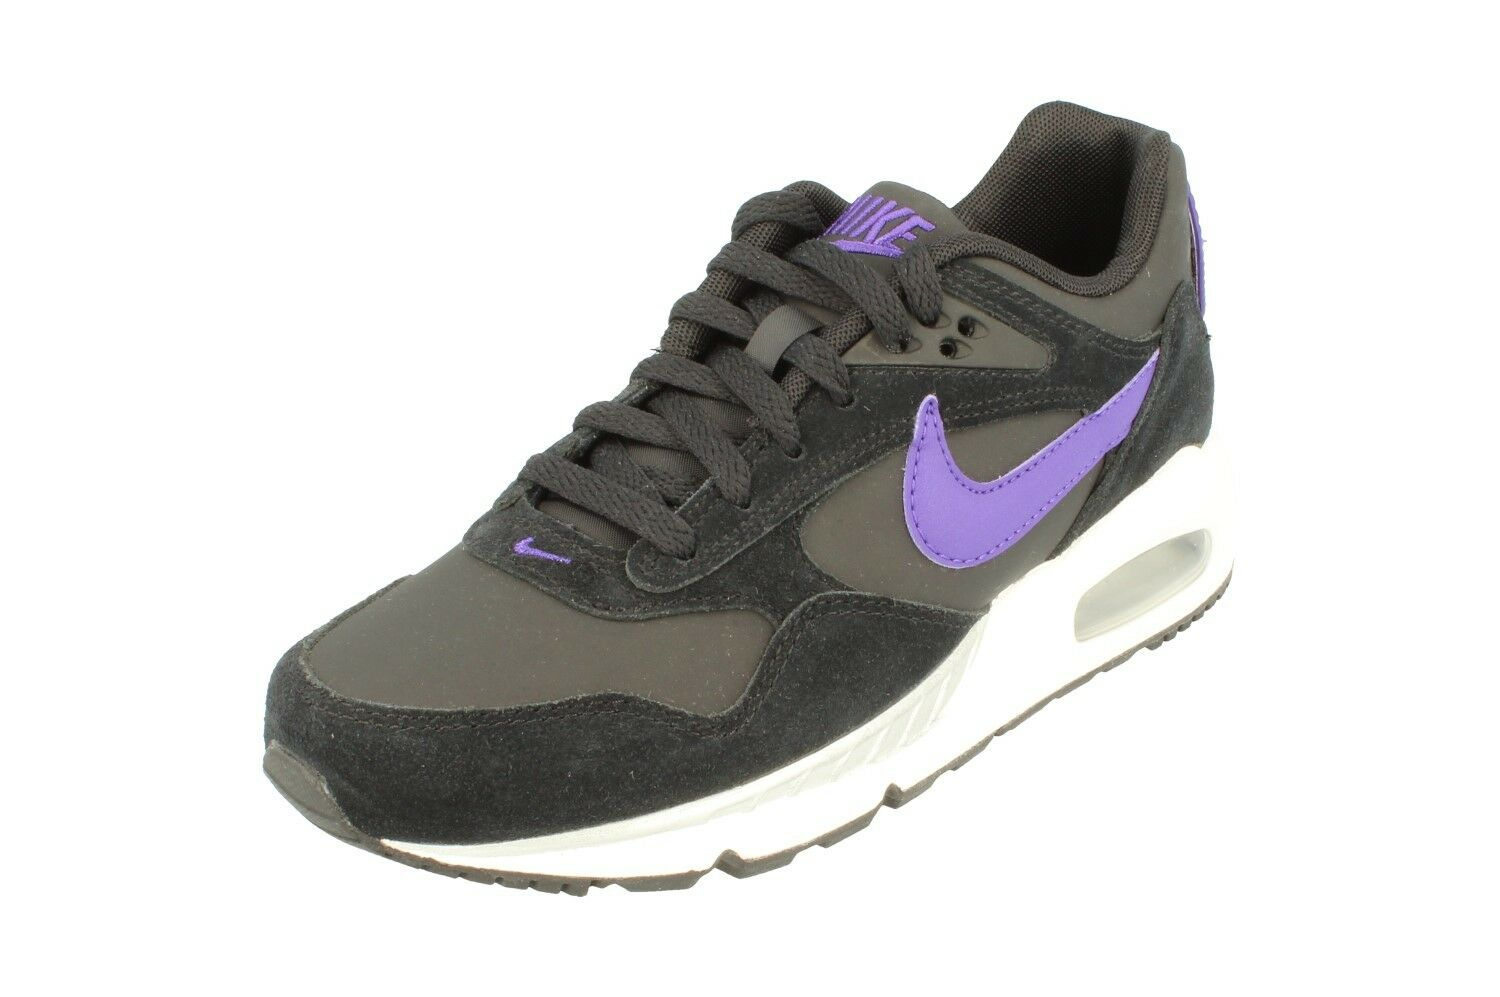 Nike Womens Air Max Correlate LTR Running Trainers 525381 Sneakers Shoes 040 Casual wild